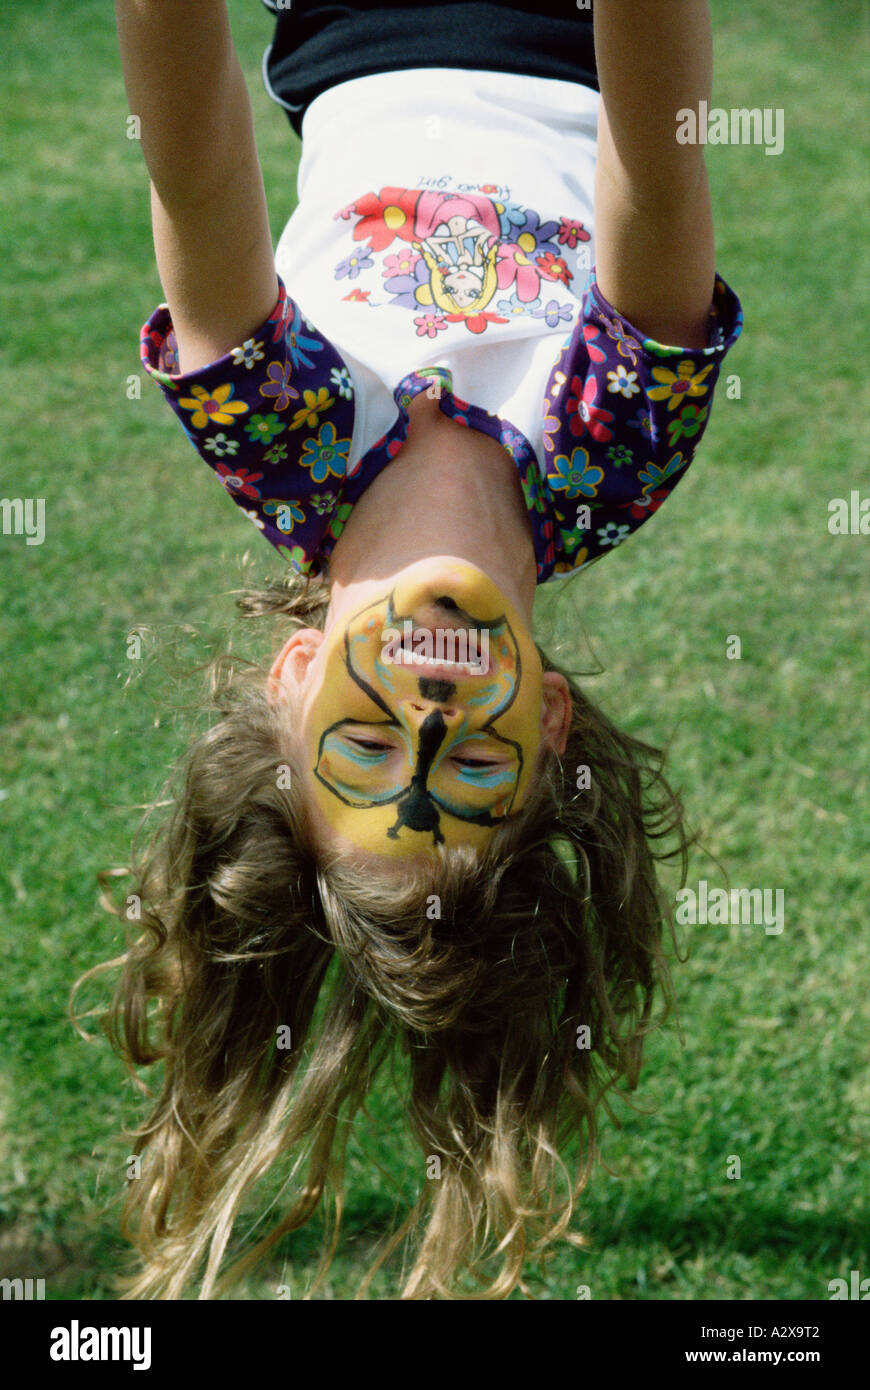 Outdoor image of child girl with painted face hanging upside down. - Stock Image